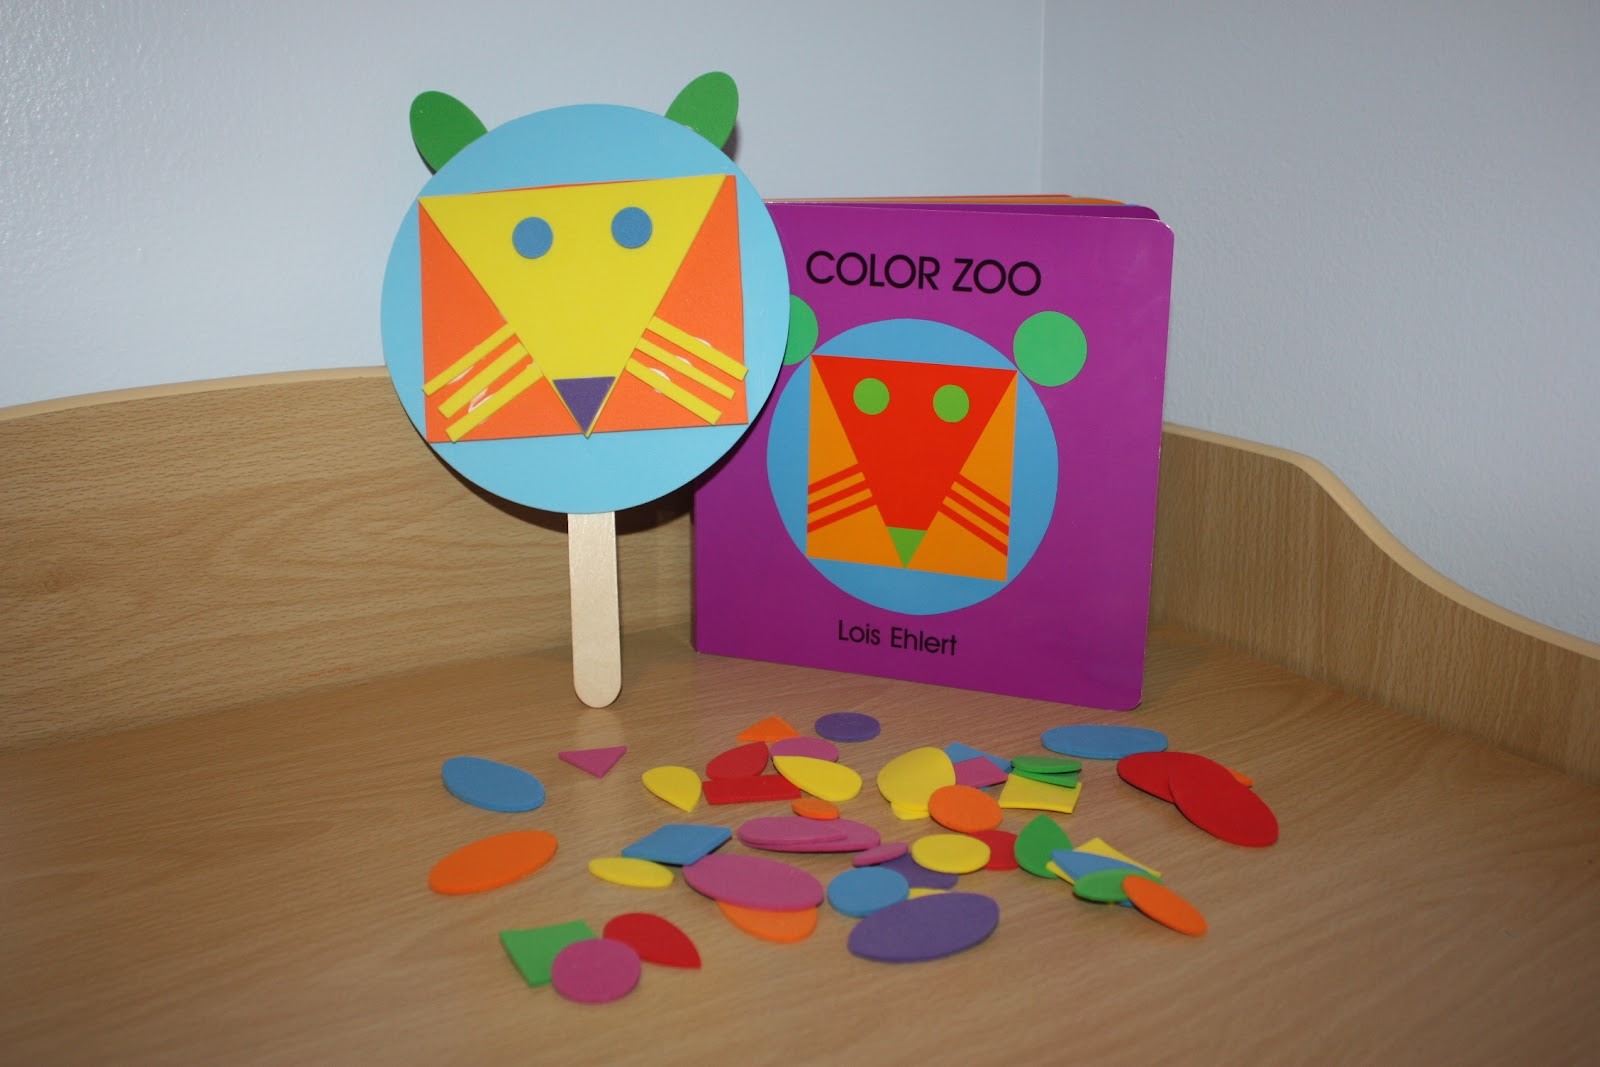 Patton S Bookcase Color Zoo Fun With Shapes